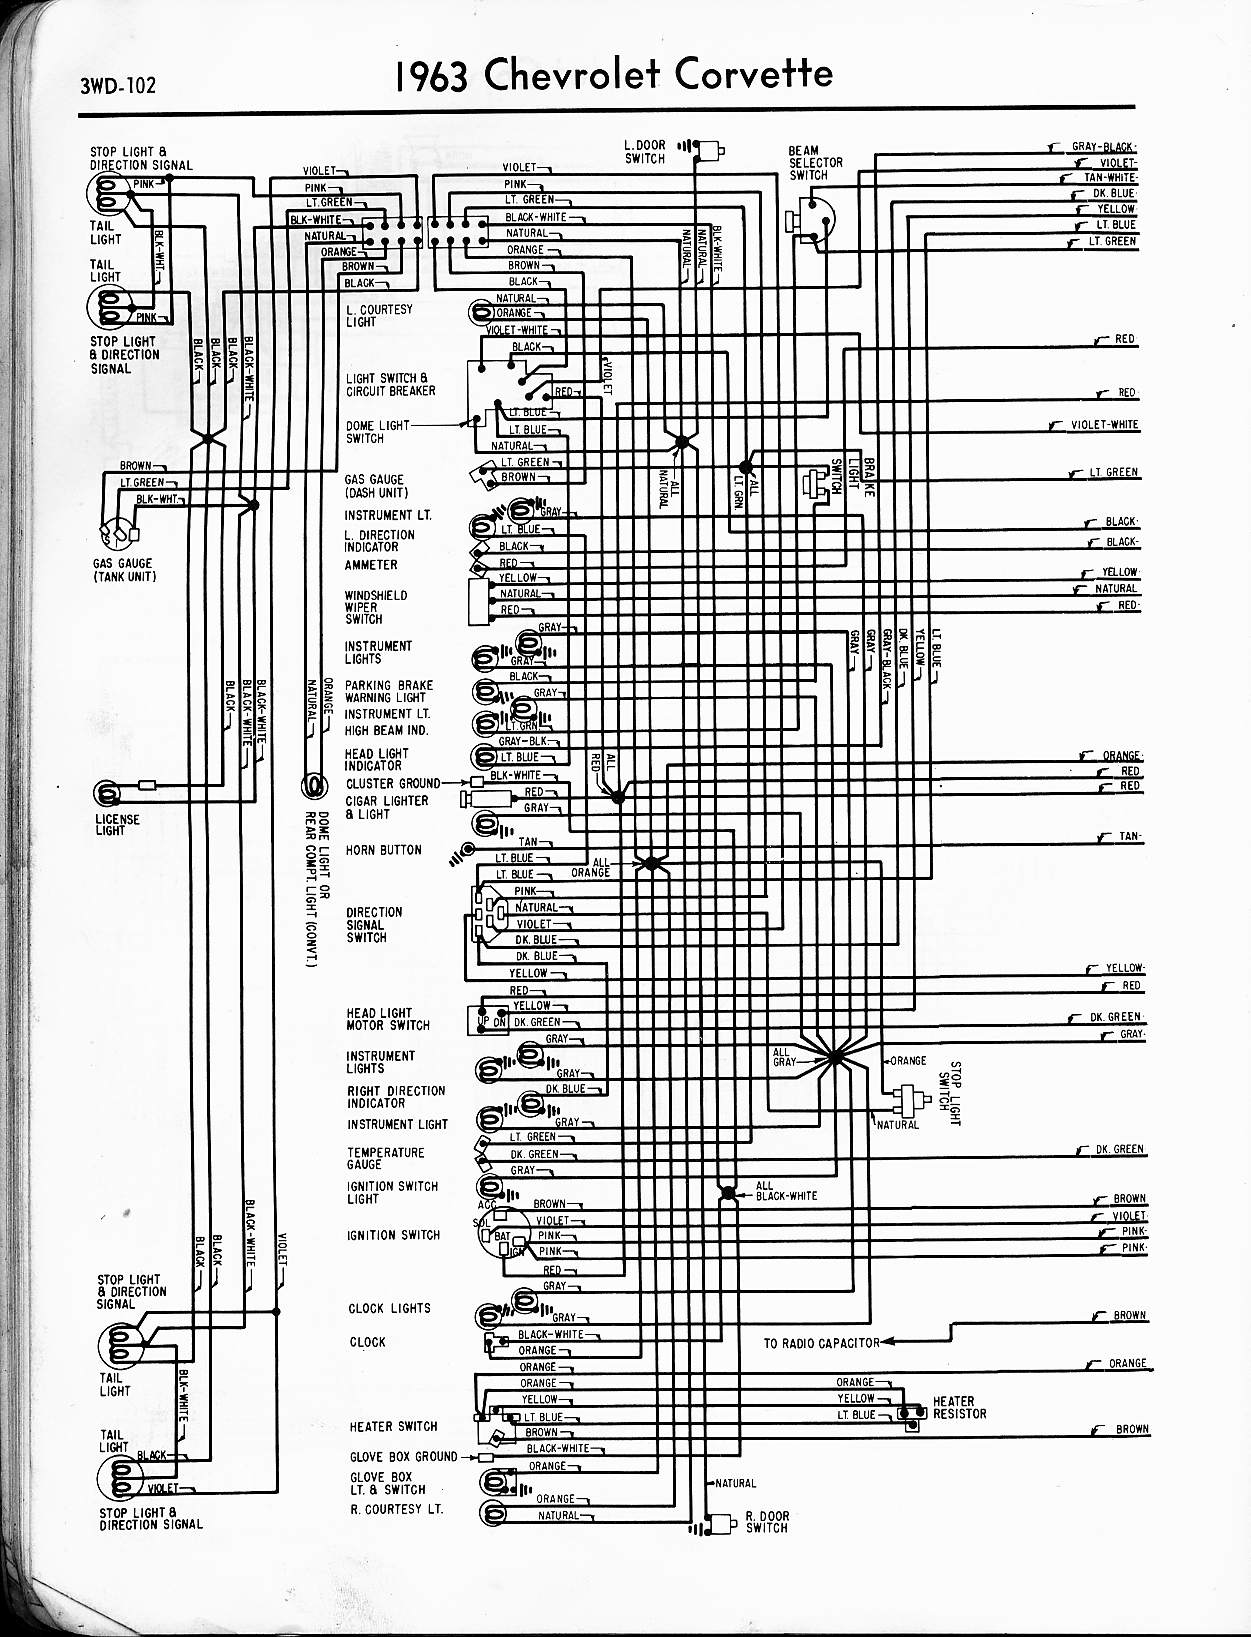 MWireChev63_3WD 102 1963 corvette wiring diagram 1963 corvette oil filter \u2022 wiring 1964 impala wiring diagram for ignition at webbmarketing.co